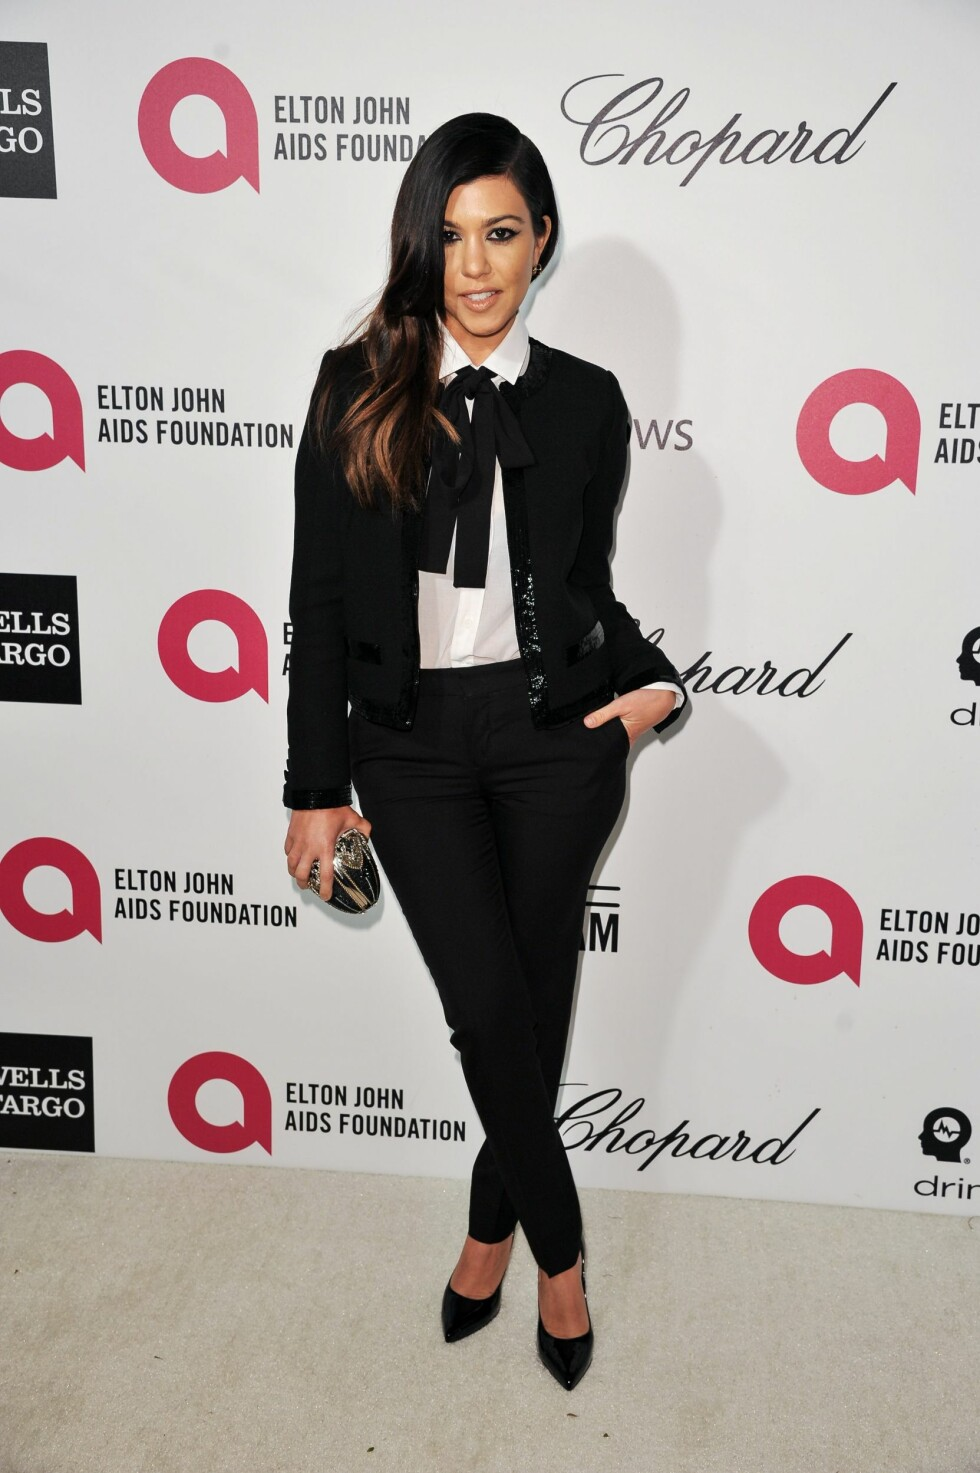 West Hollywood 2014-03-03 Kourtney Kardashian arrives at 2014 Elton John Oscar Viewing and After Party Mar. 2, 2014 in West Hollywood, Calif. (Photo by Richard Shotwell/Invision/AP) Photo: Richard Shotwell / INVISION / TT / kod 10612 ***BETALBILD*** Foto: INVISION